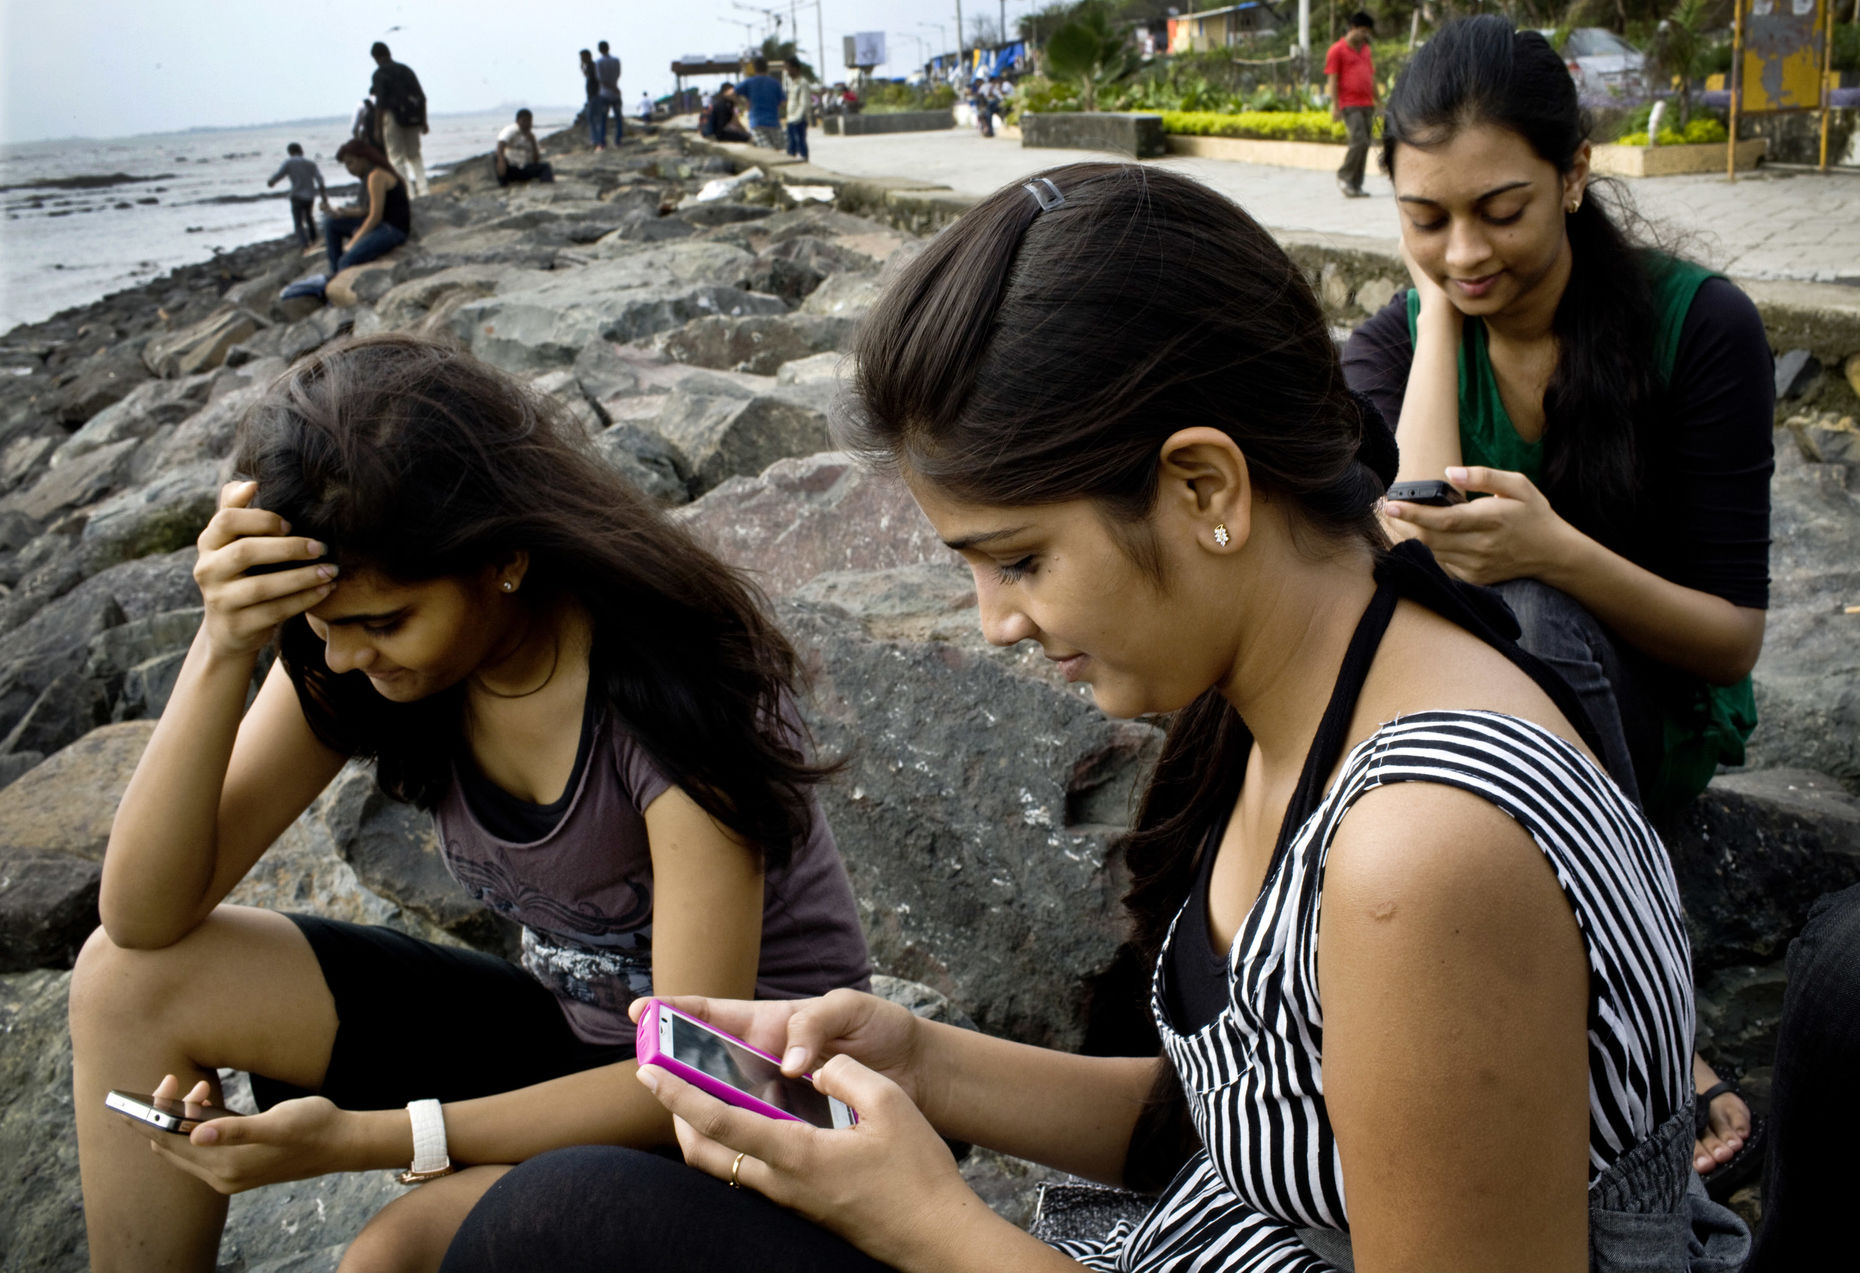 College students in Mumbai, India check their Facebook accounts. Photo by Bloomberg.